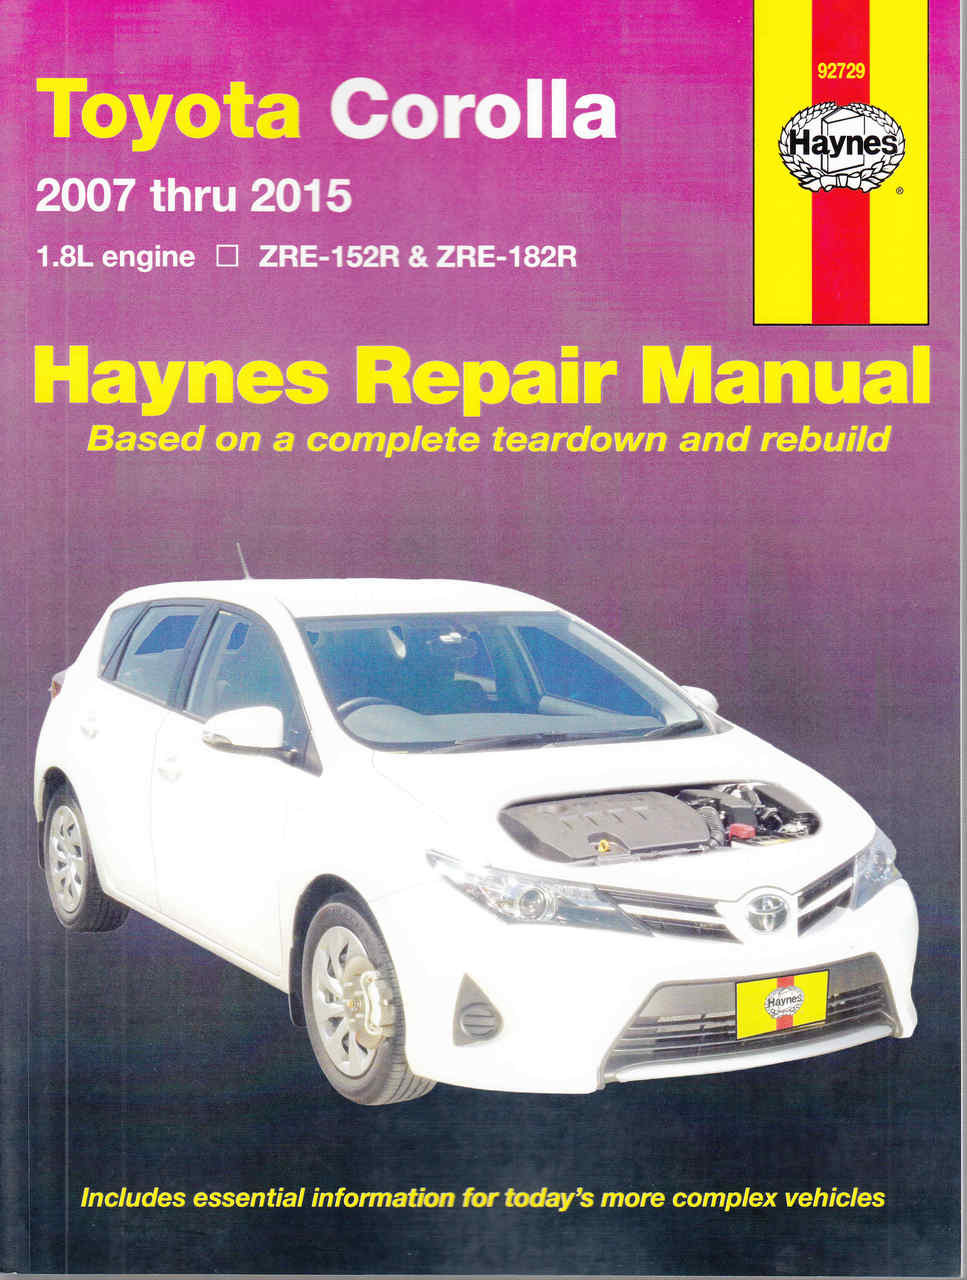 Toyota Corolla Repair Manual: Identification information